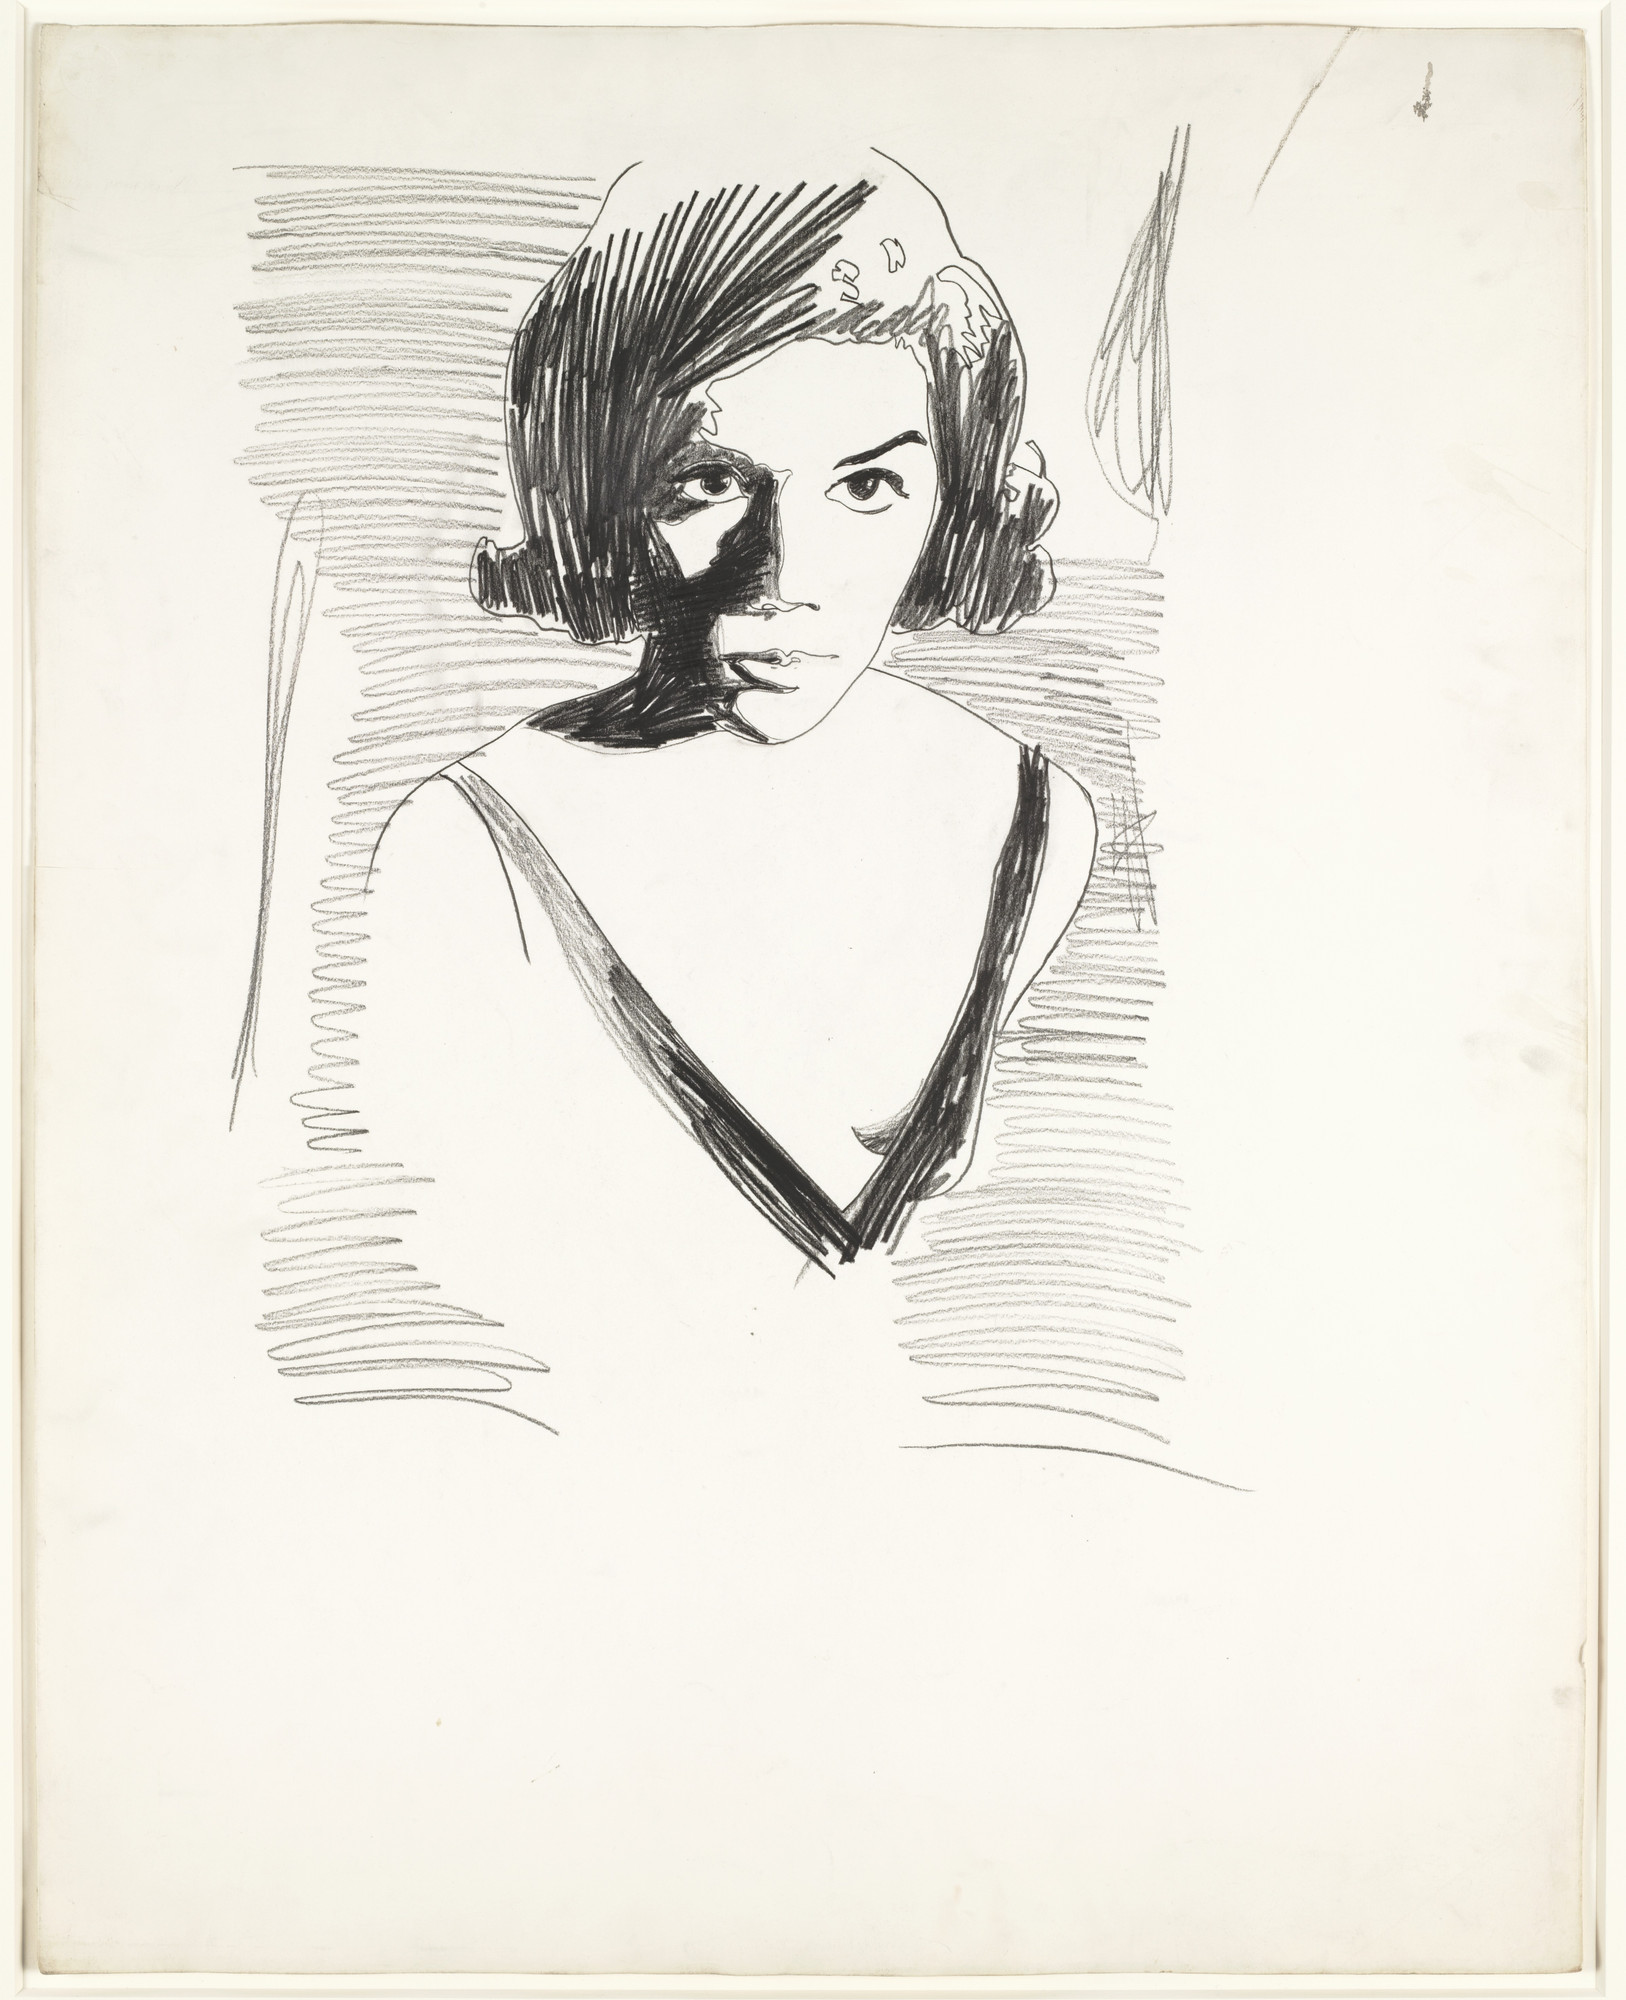 Andy Warhol. Portrait of a Woman. (1962)